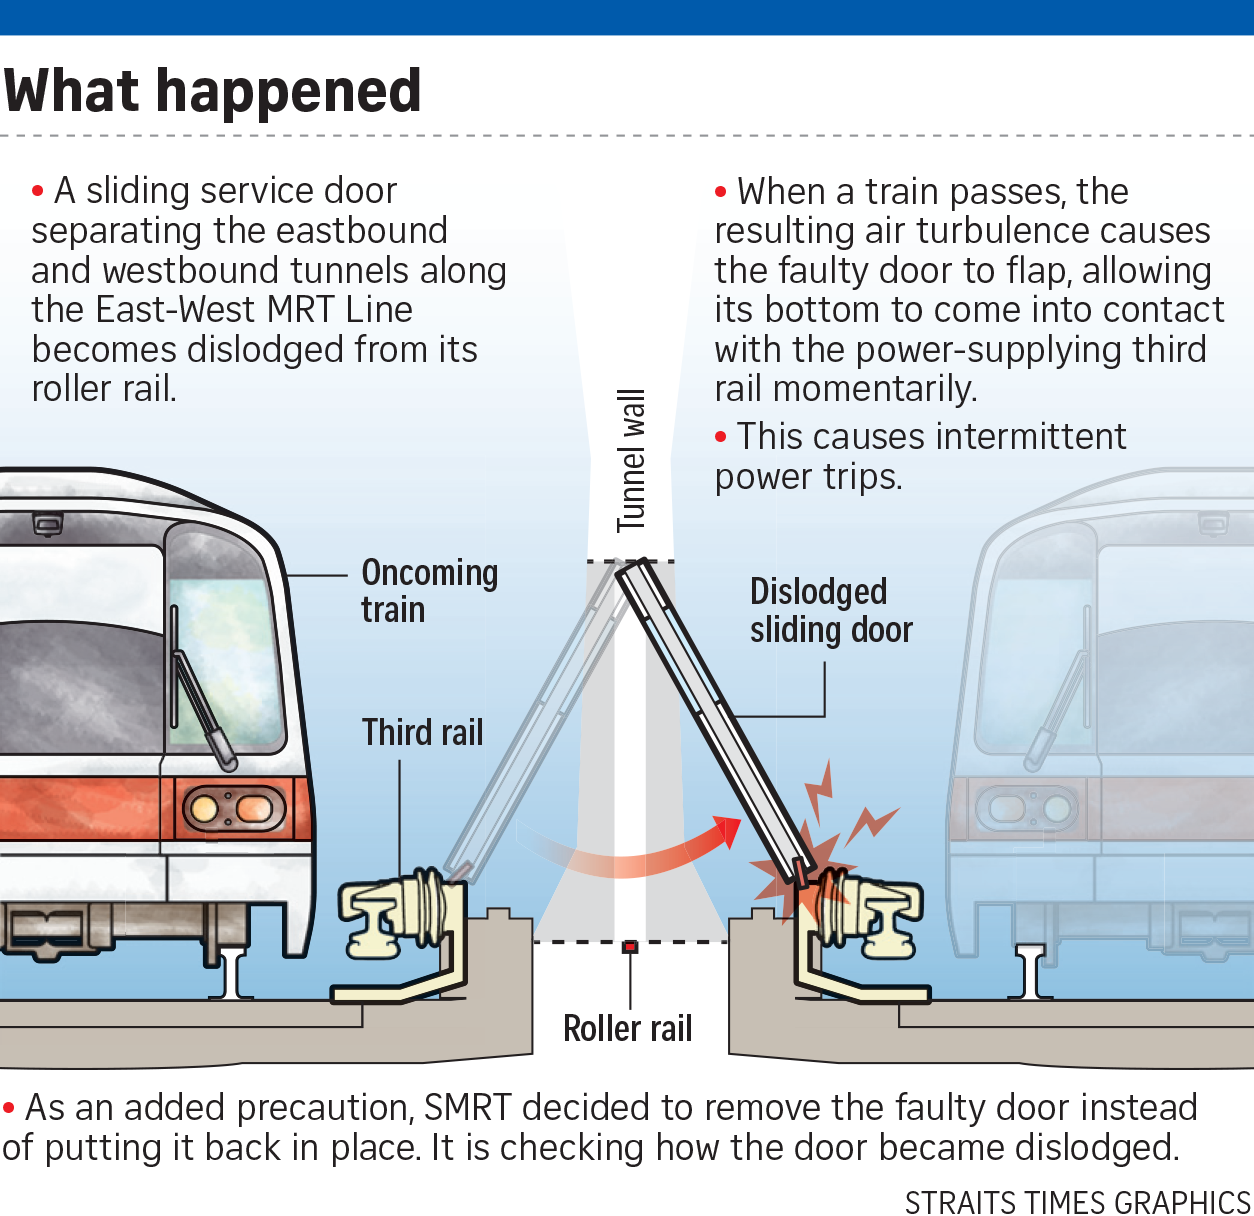 SMRT ordered to check all service maintenance doors after disruptions